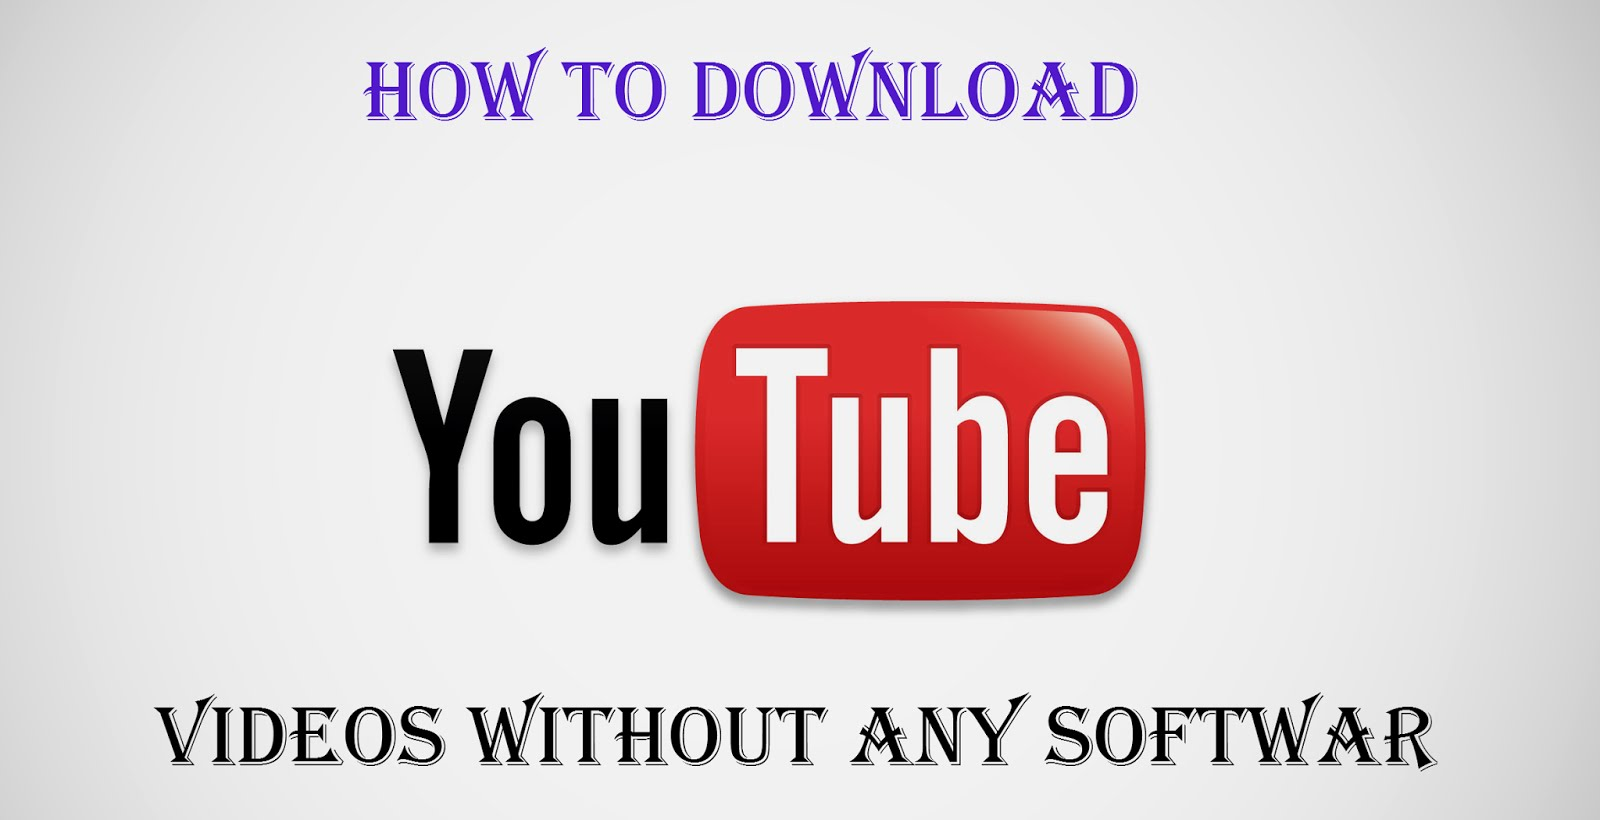 how to download youtube videos without using any software